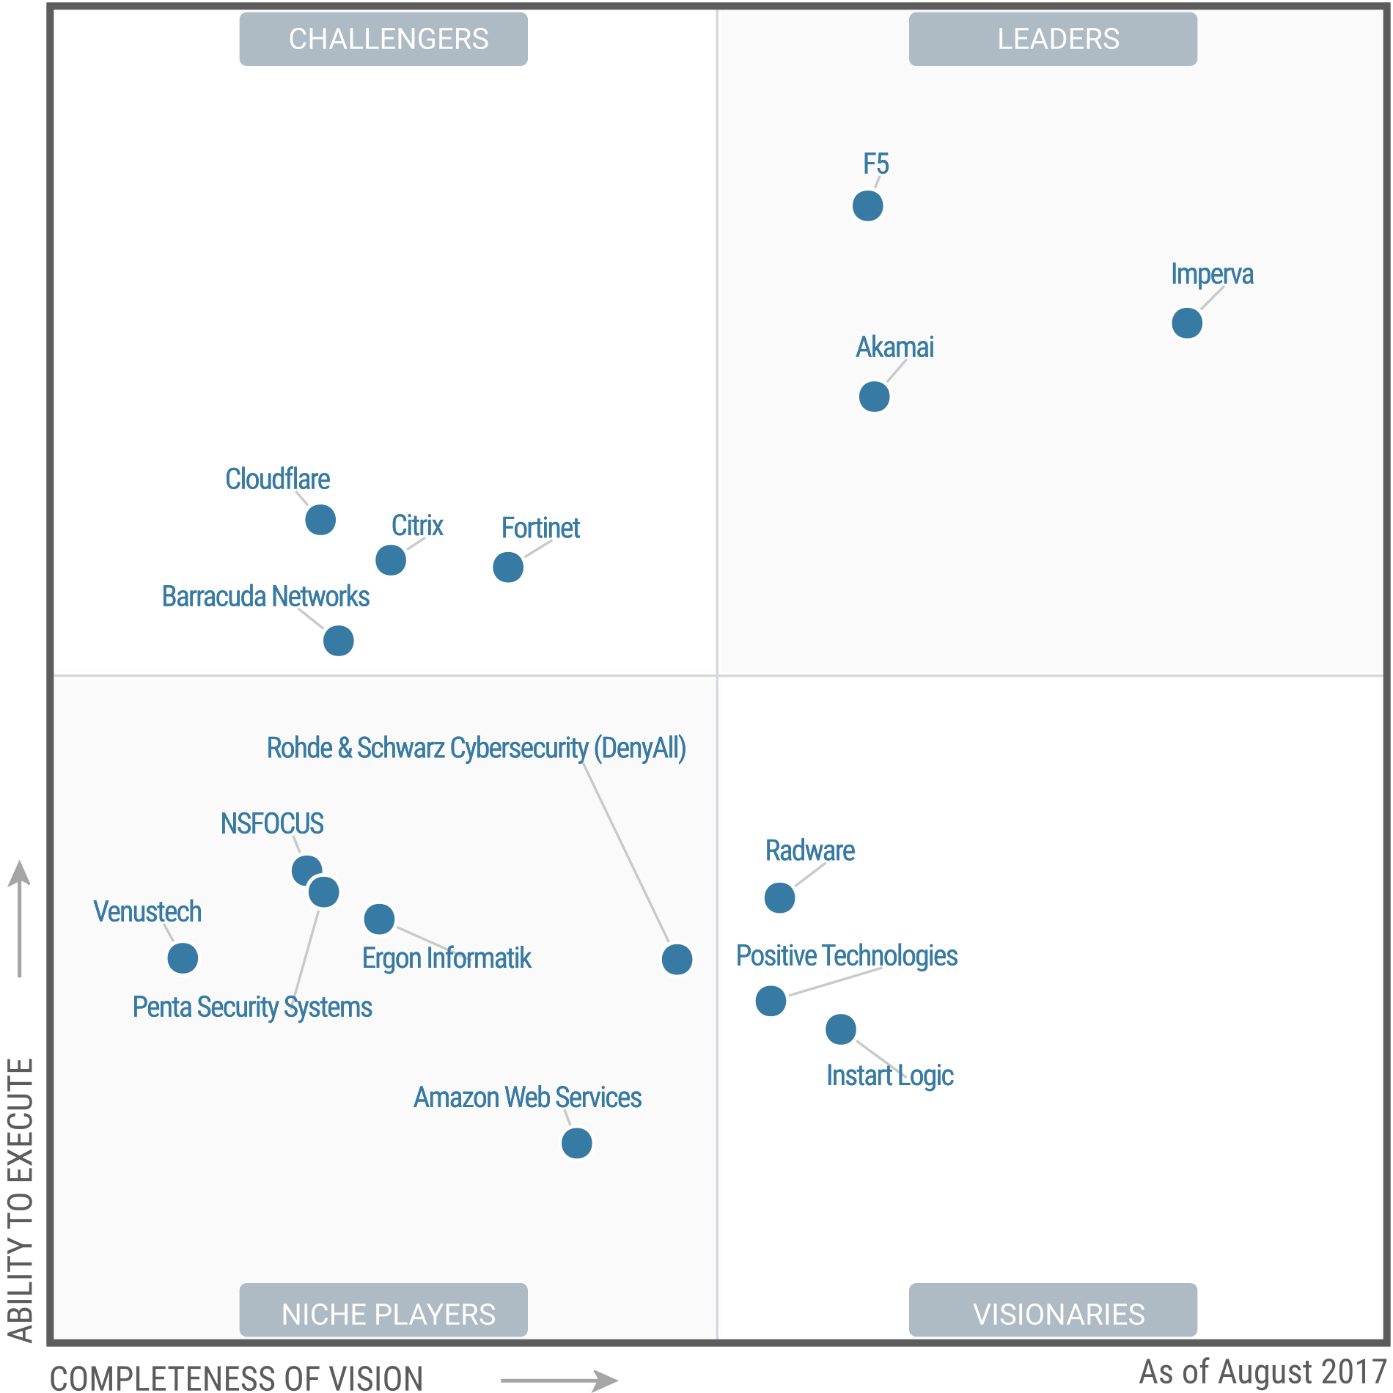 Magic Quadrant for Web Application Firewalls 2017 (G00314552)